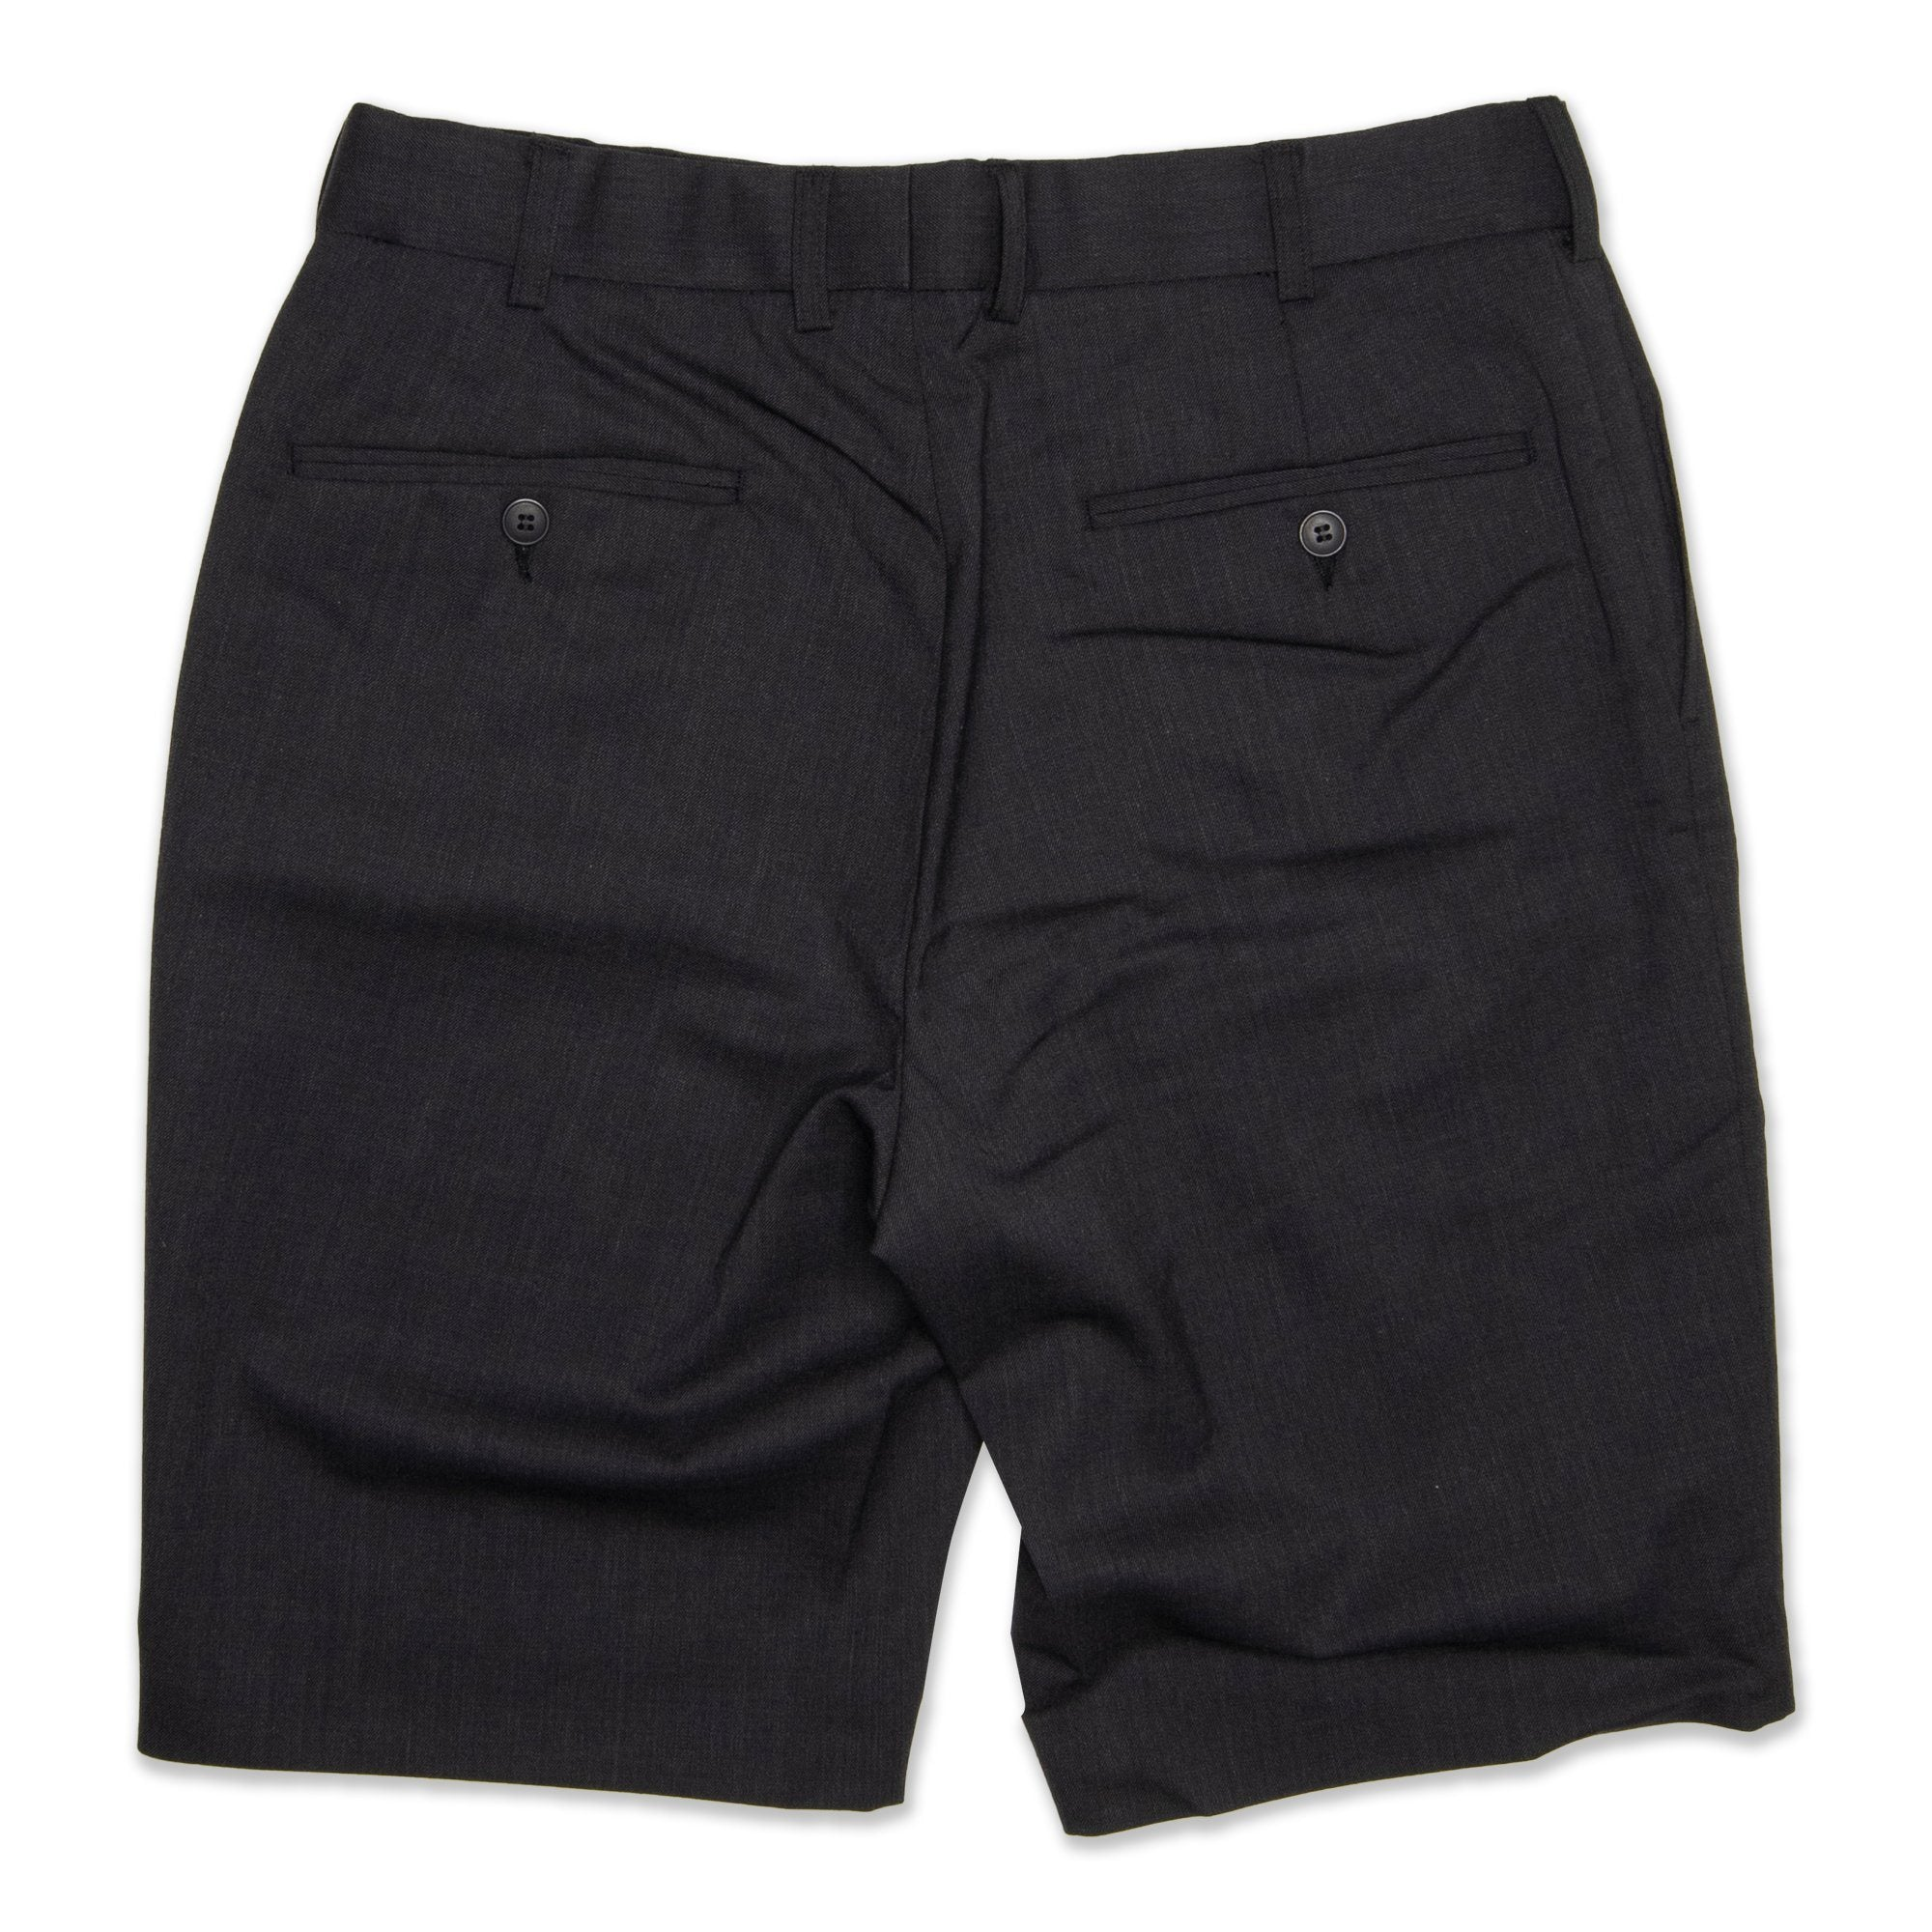 StyleCorp F/Front Men's Shorts - Charcoal Workwear StyleCorp